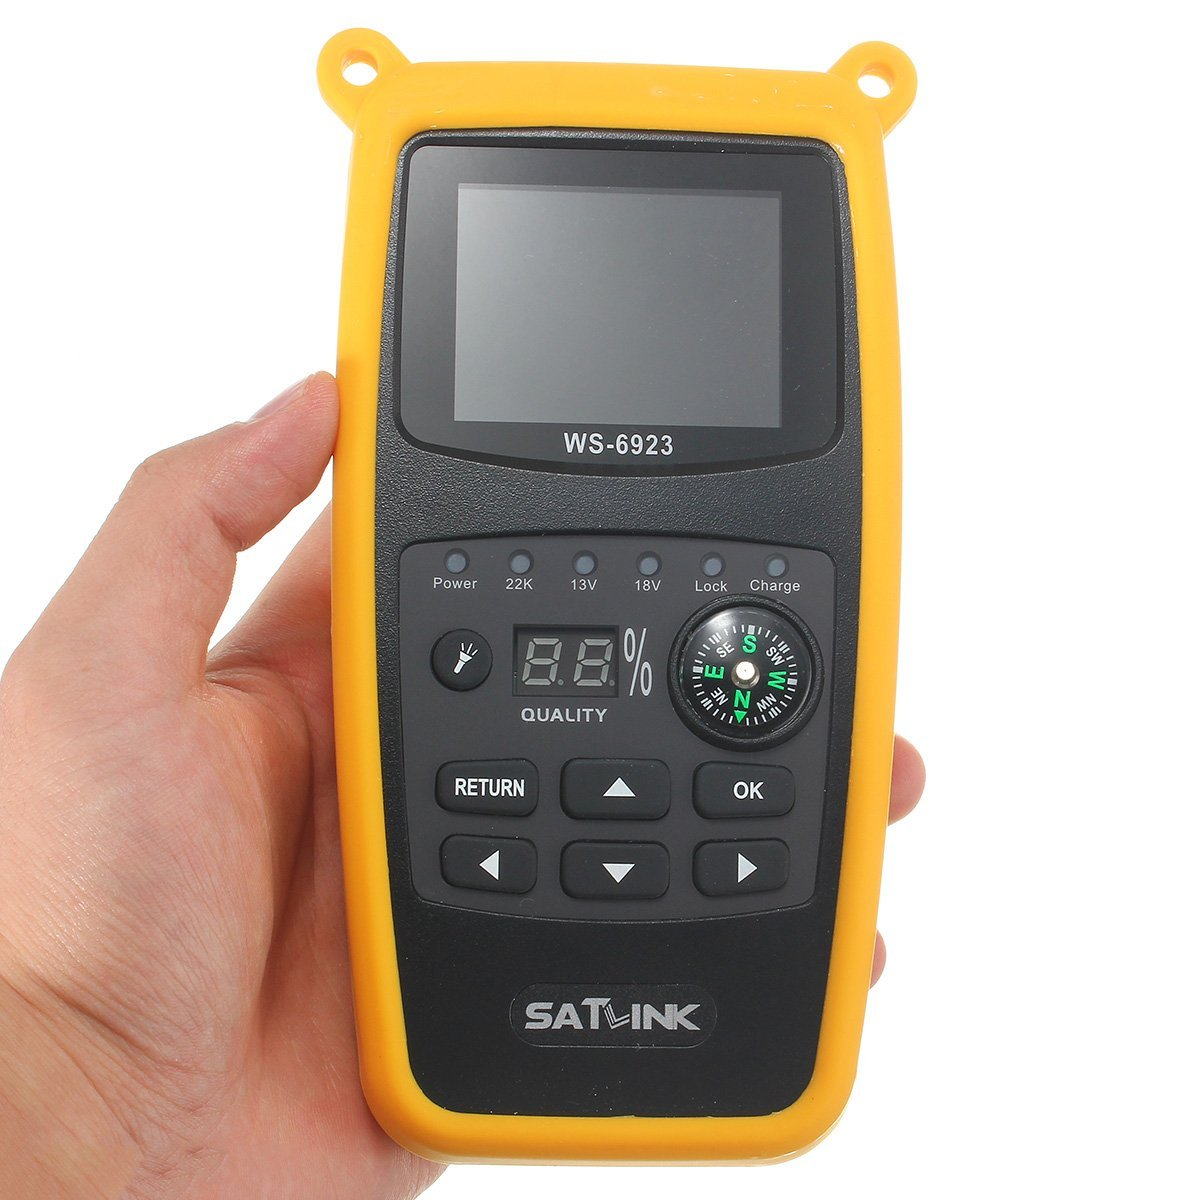 Satlink WS-6923 DVB-S FTA C&KU Band Digital Satellite Finder Meter Satellite Receiver with 2.1inch LCD Display